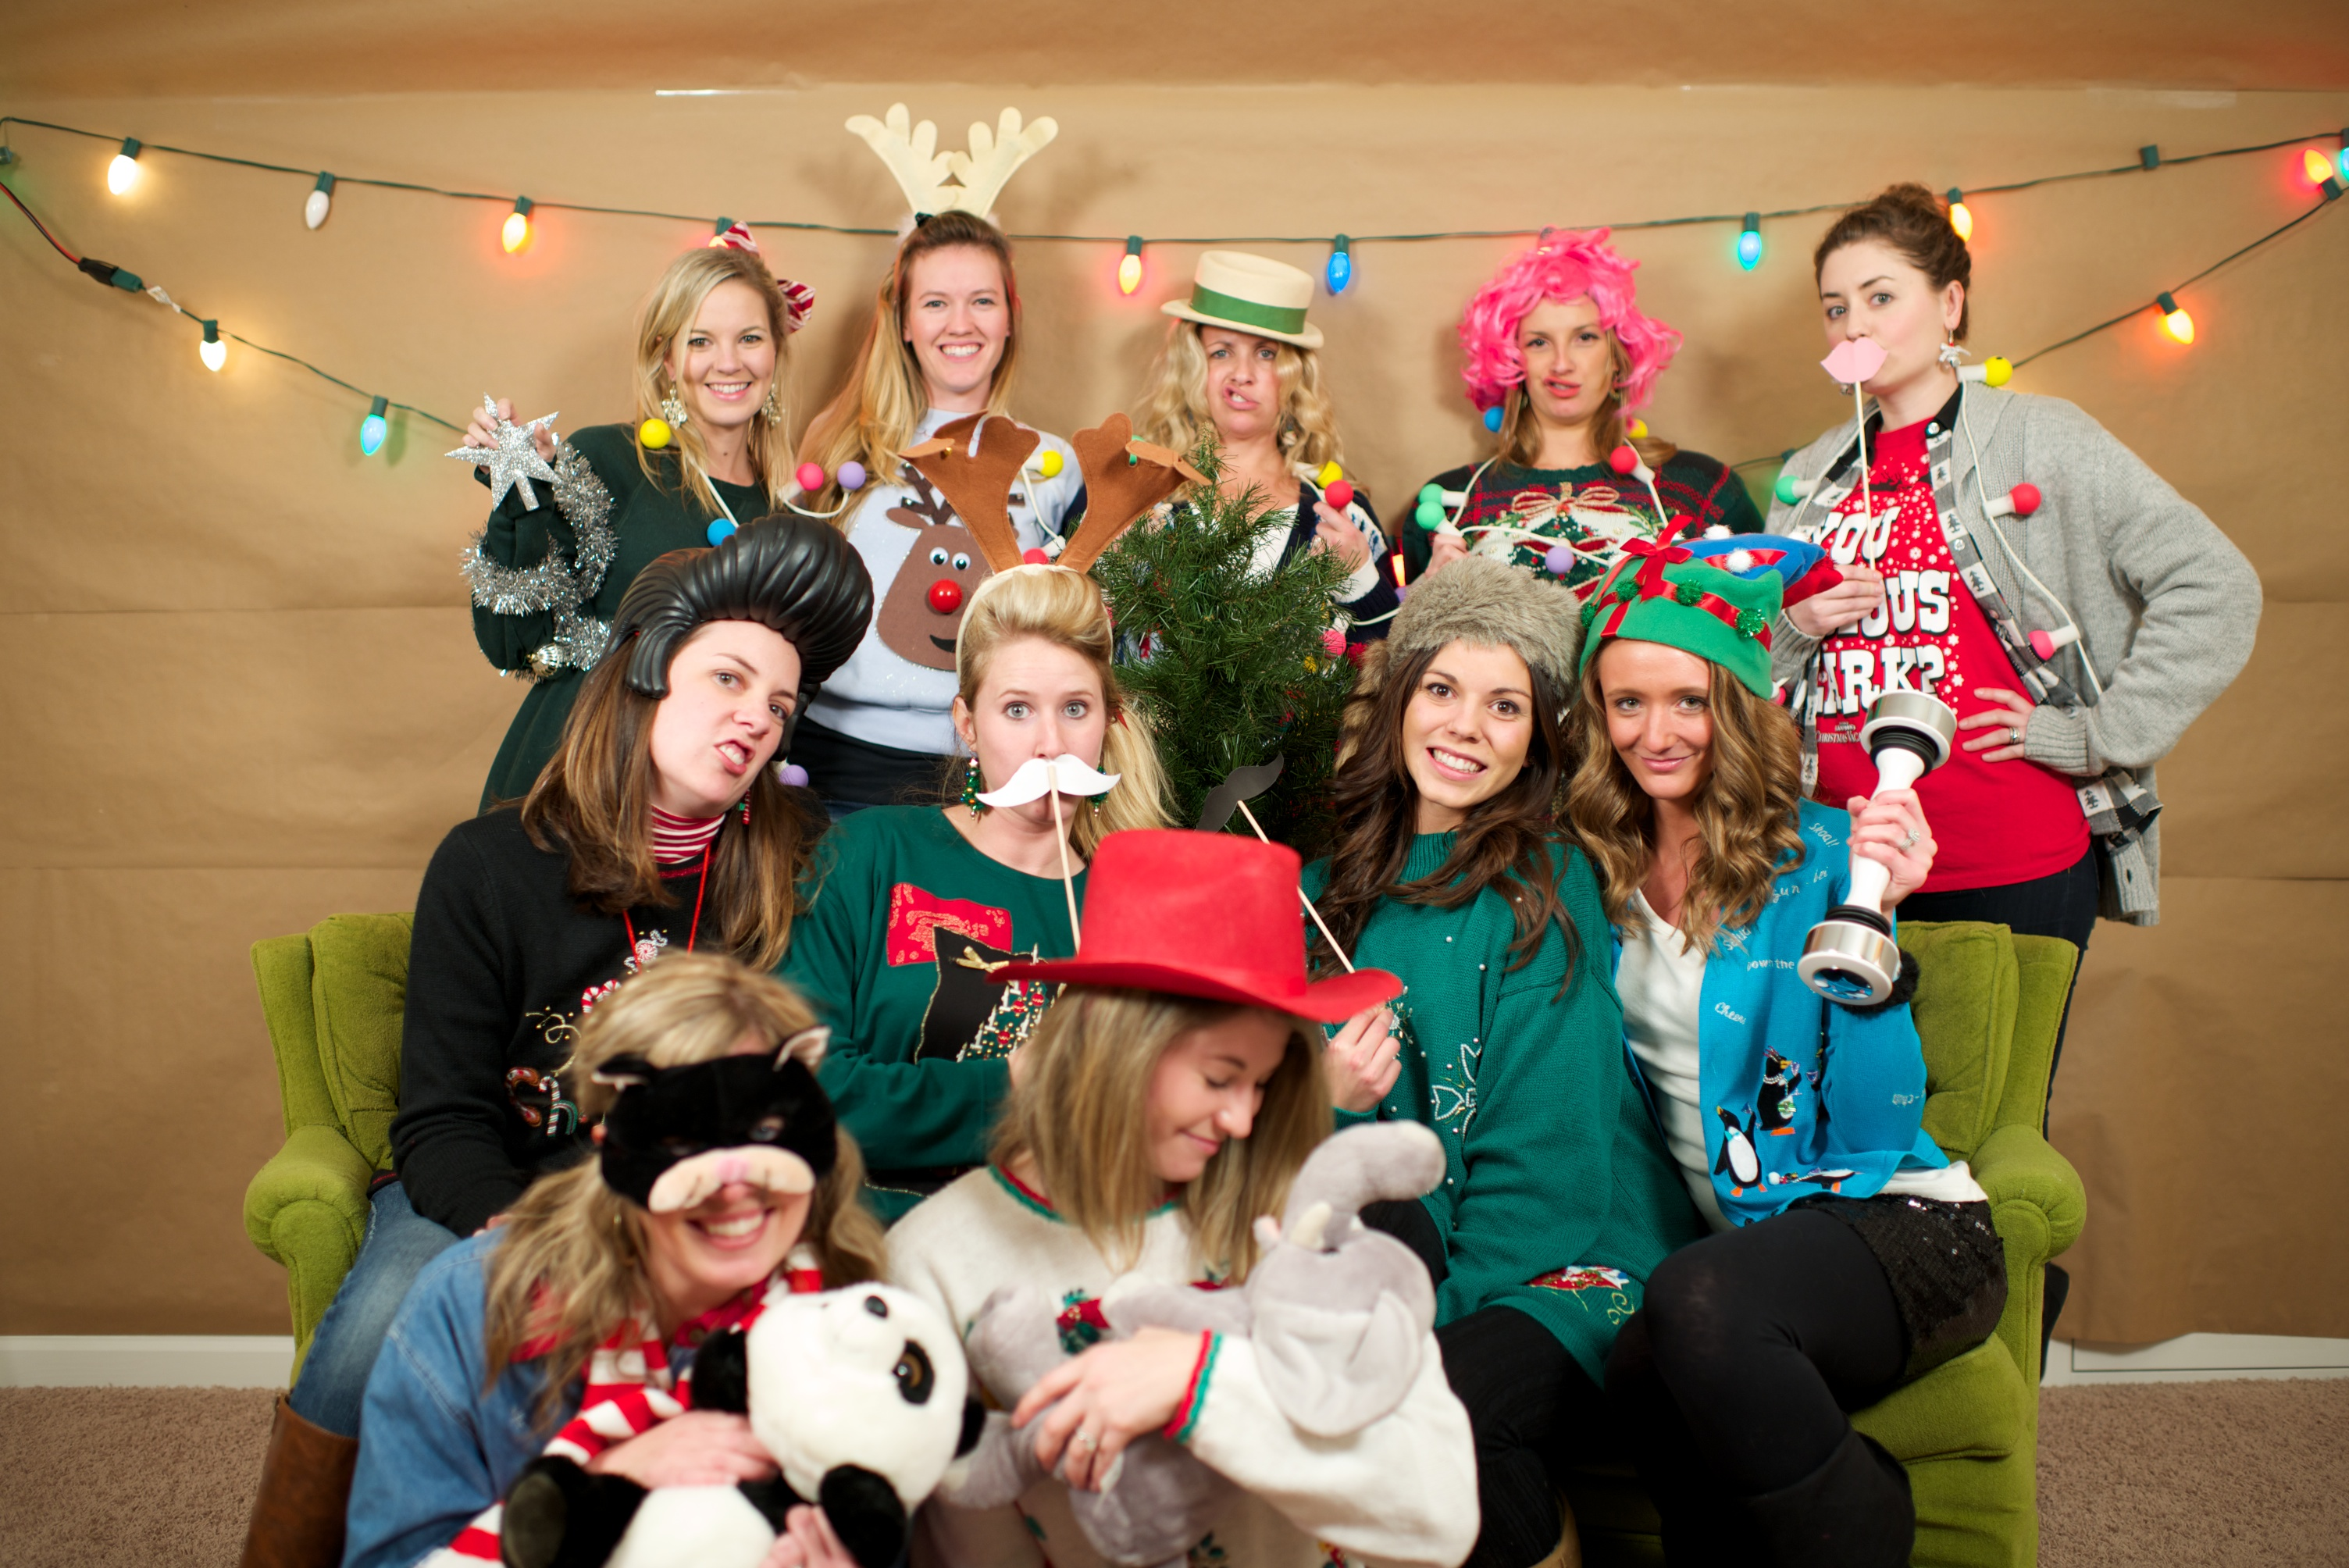 Tacky-Christmas-Party-123.jpg